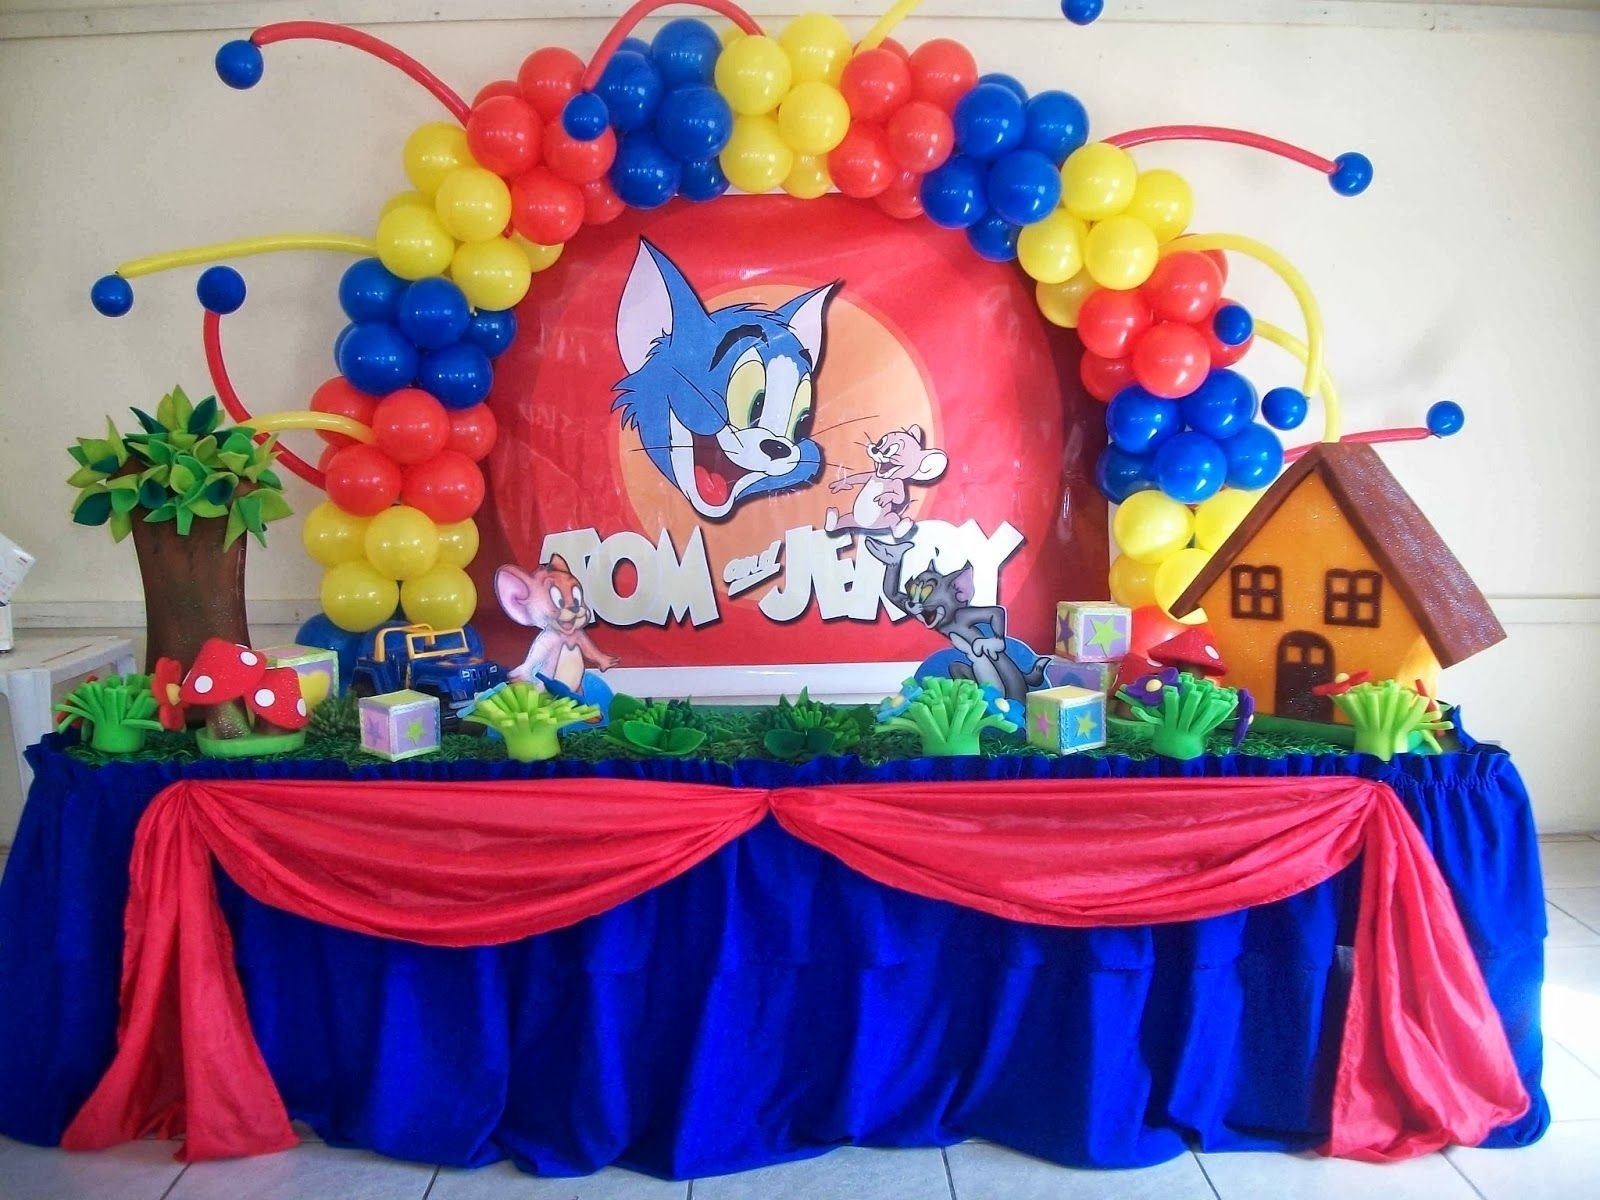 tom & jerry theme - 1 star | most beautiful birthday party themes